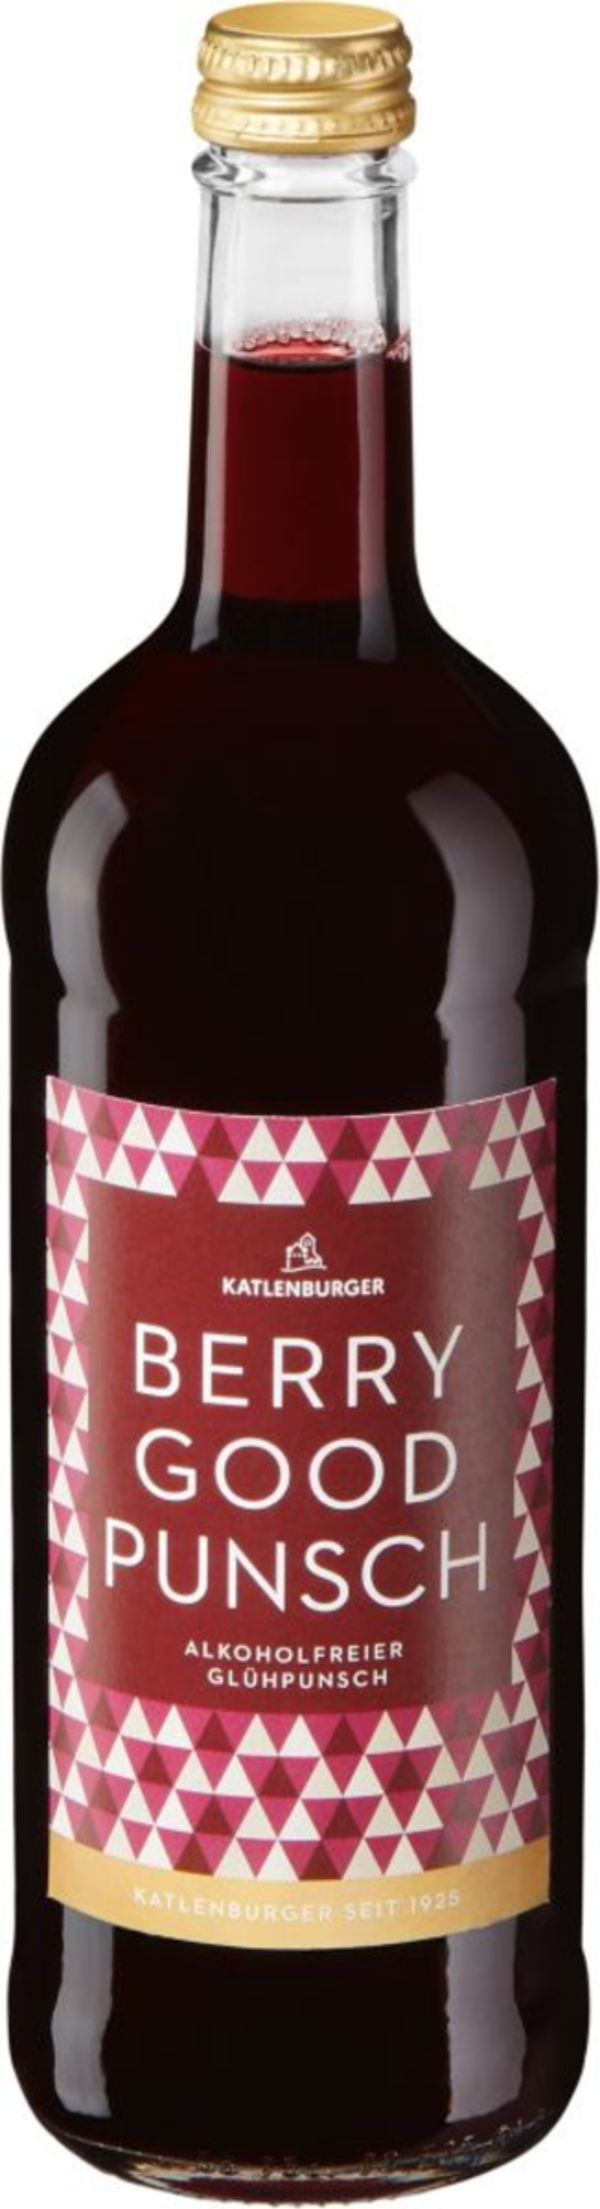 Berry Good Punsch 0,75 Liter